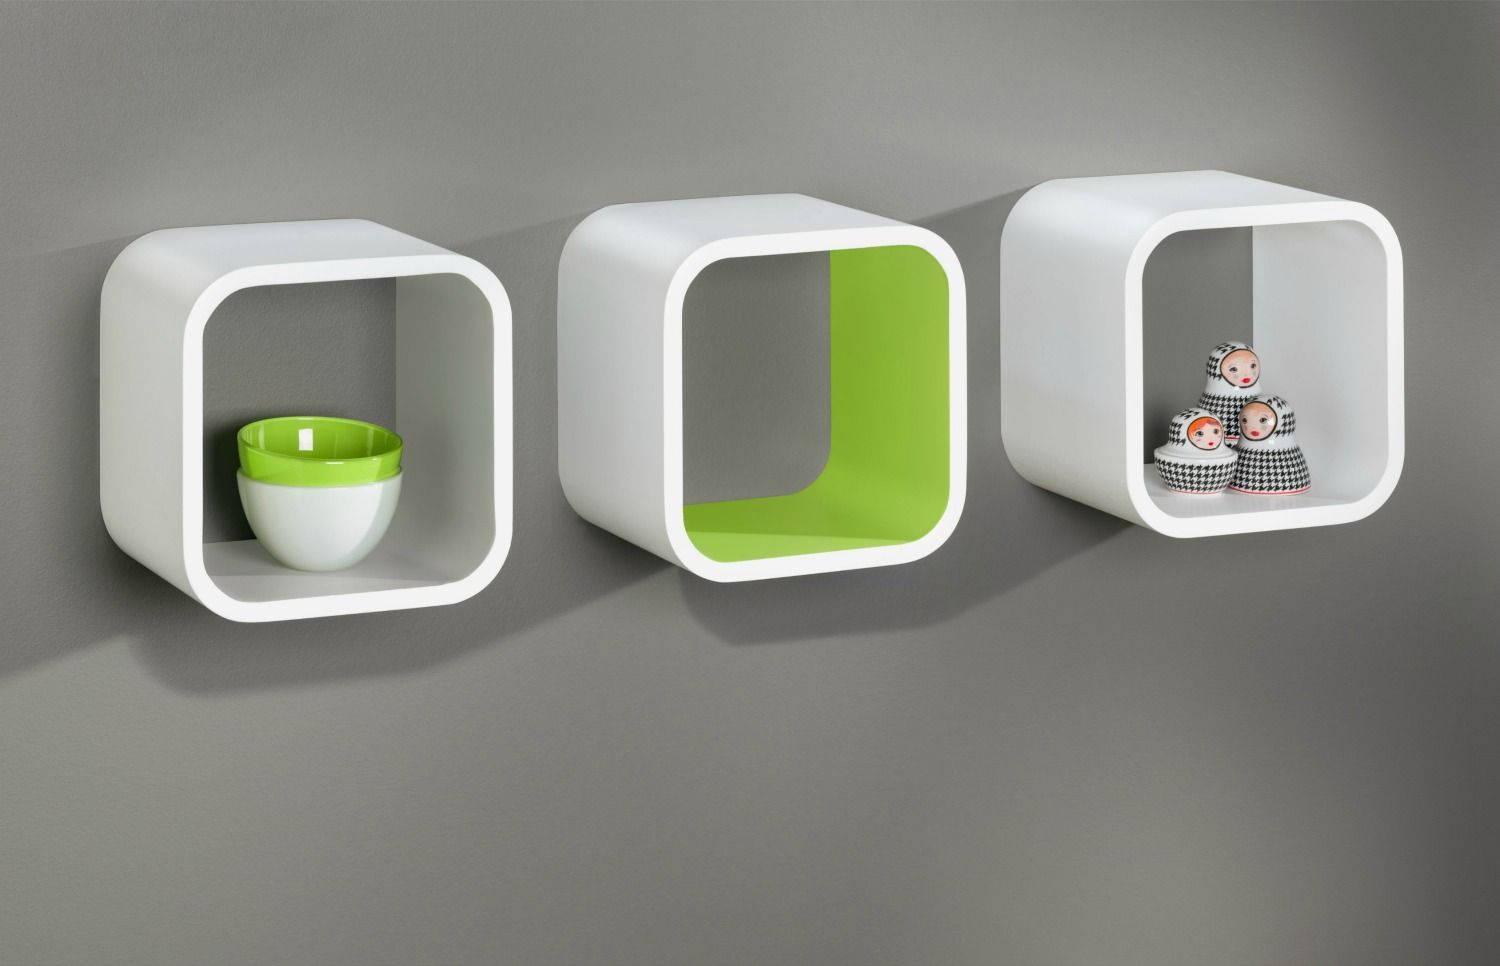 Softcube floating shelf